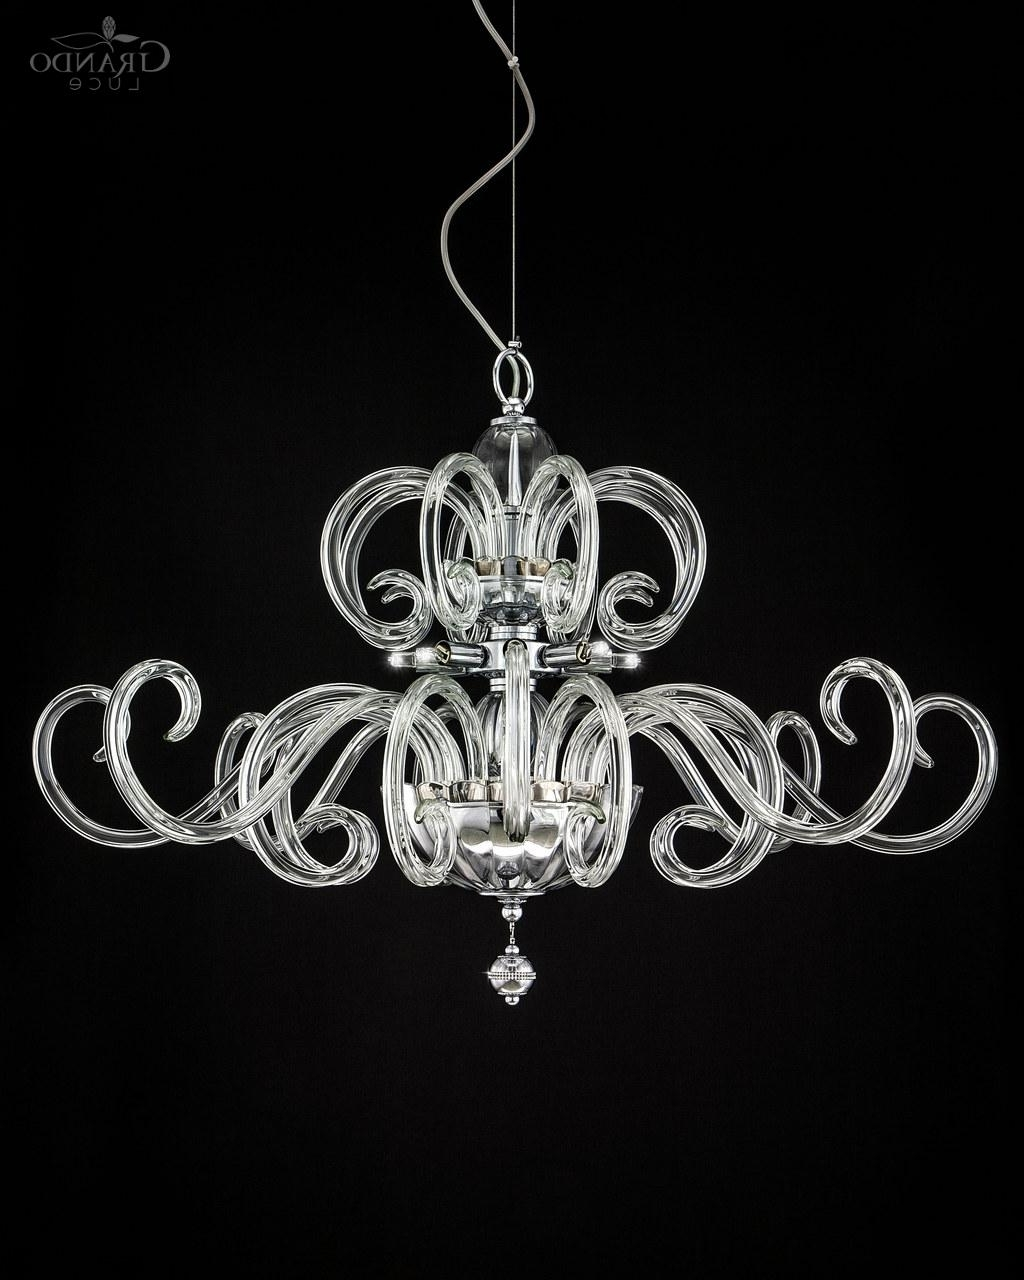 119/sg Chrome Modern Crystal Chandelier With Crystal Swarovski Within Best And Newest Chrome And Crystal Chandeliers (View 12 of 15)